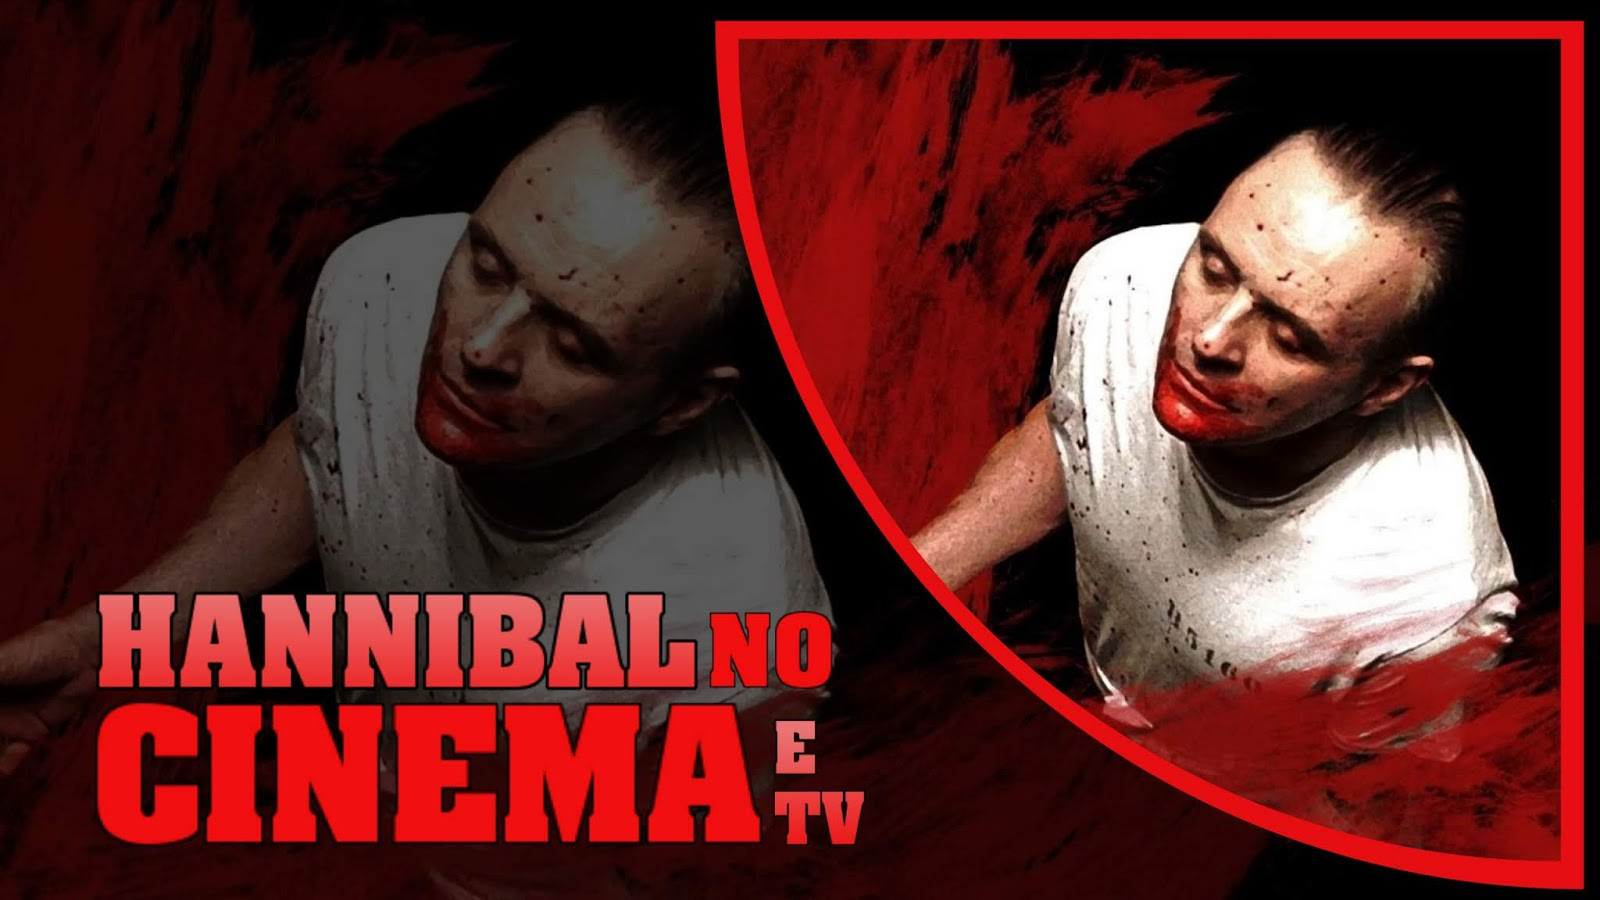 hannibal-no-cinema-tv.